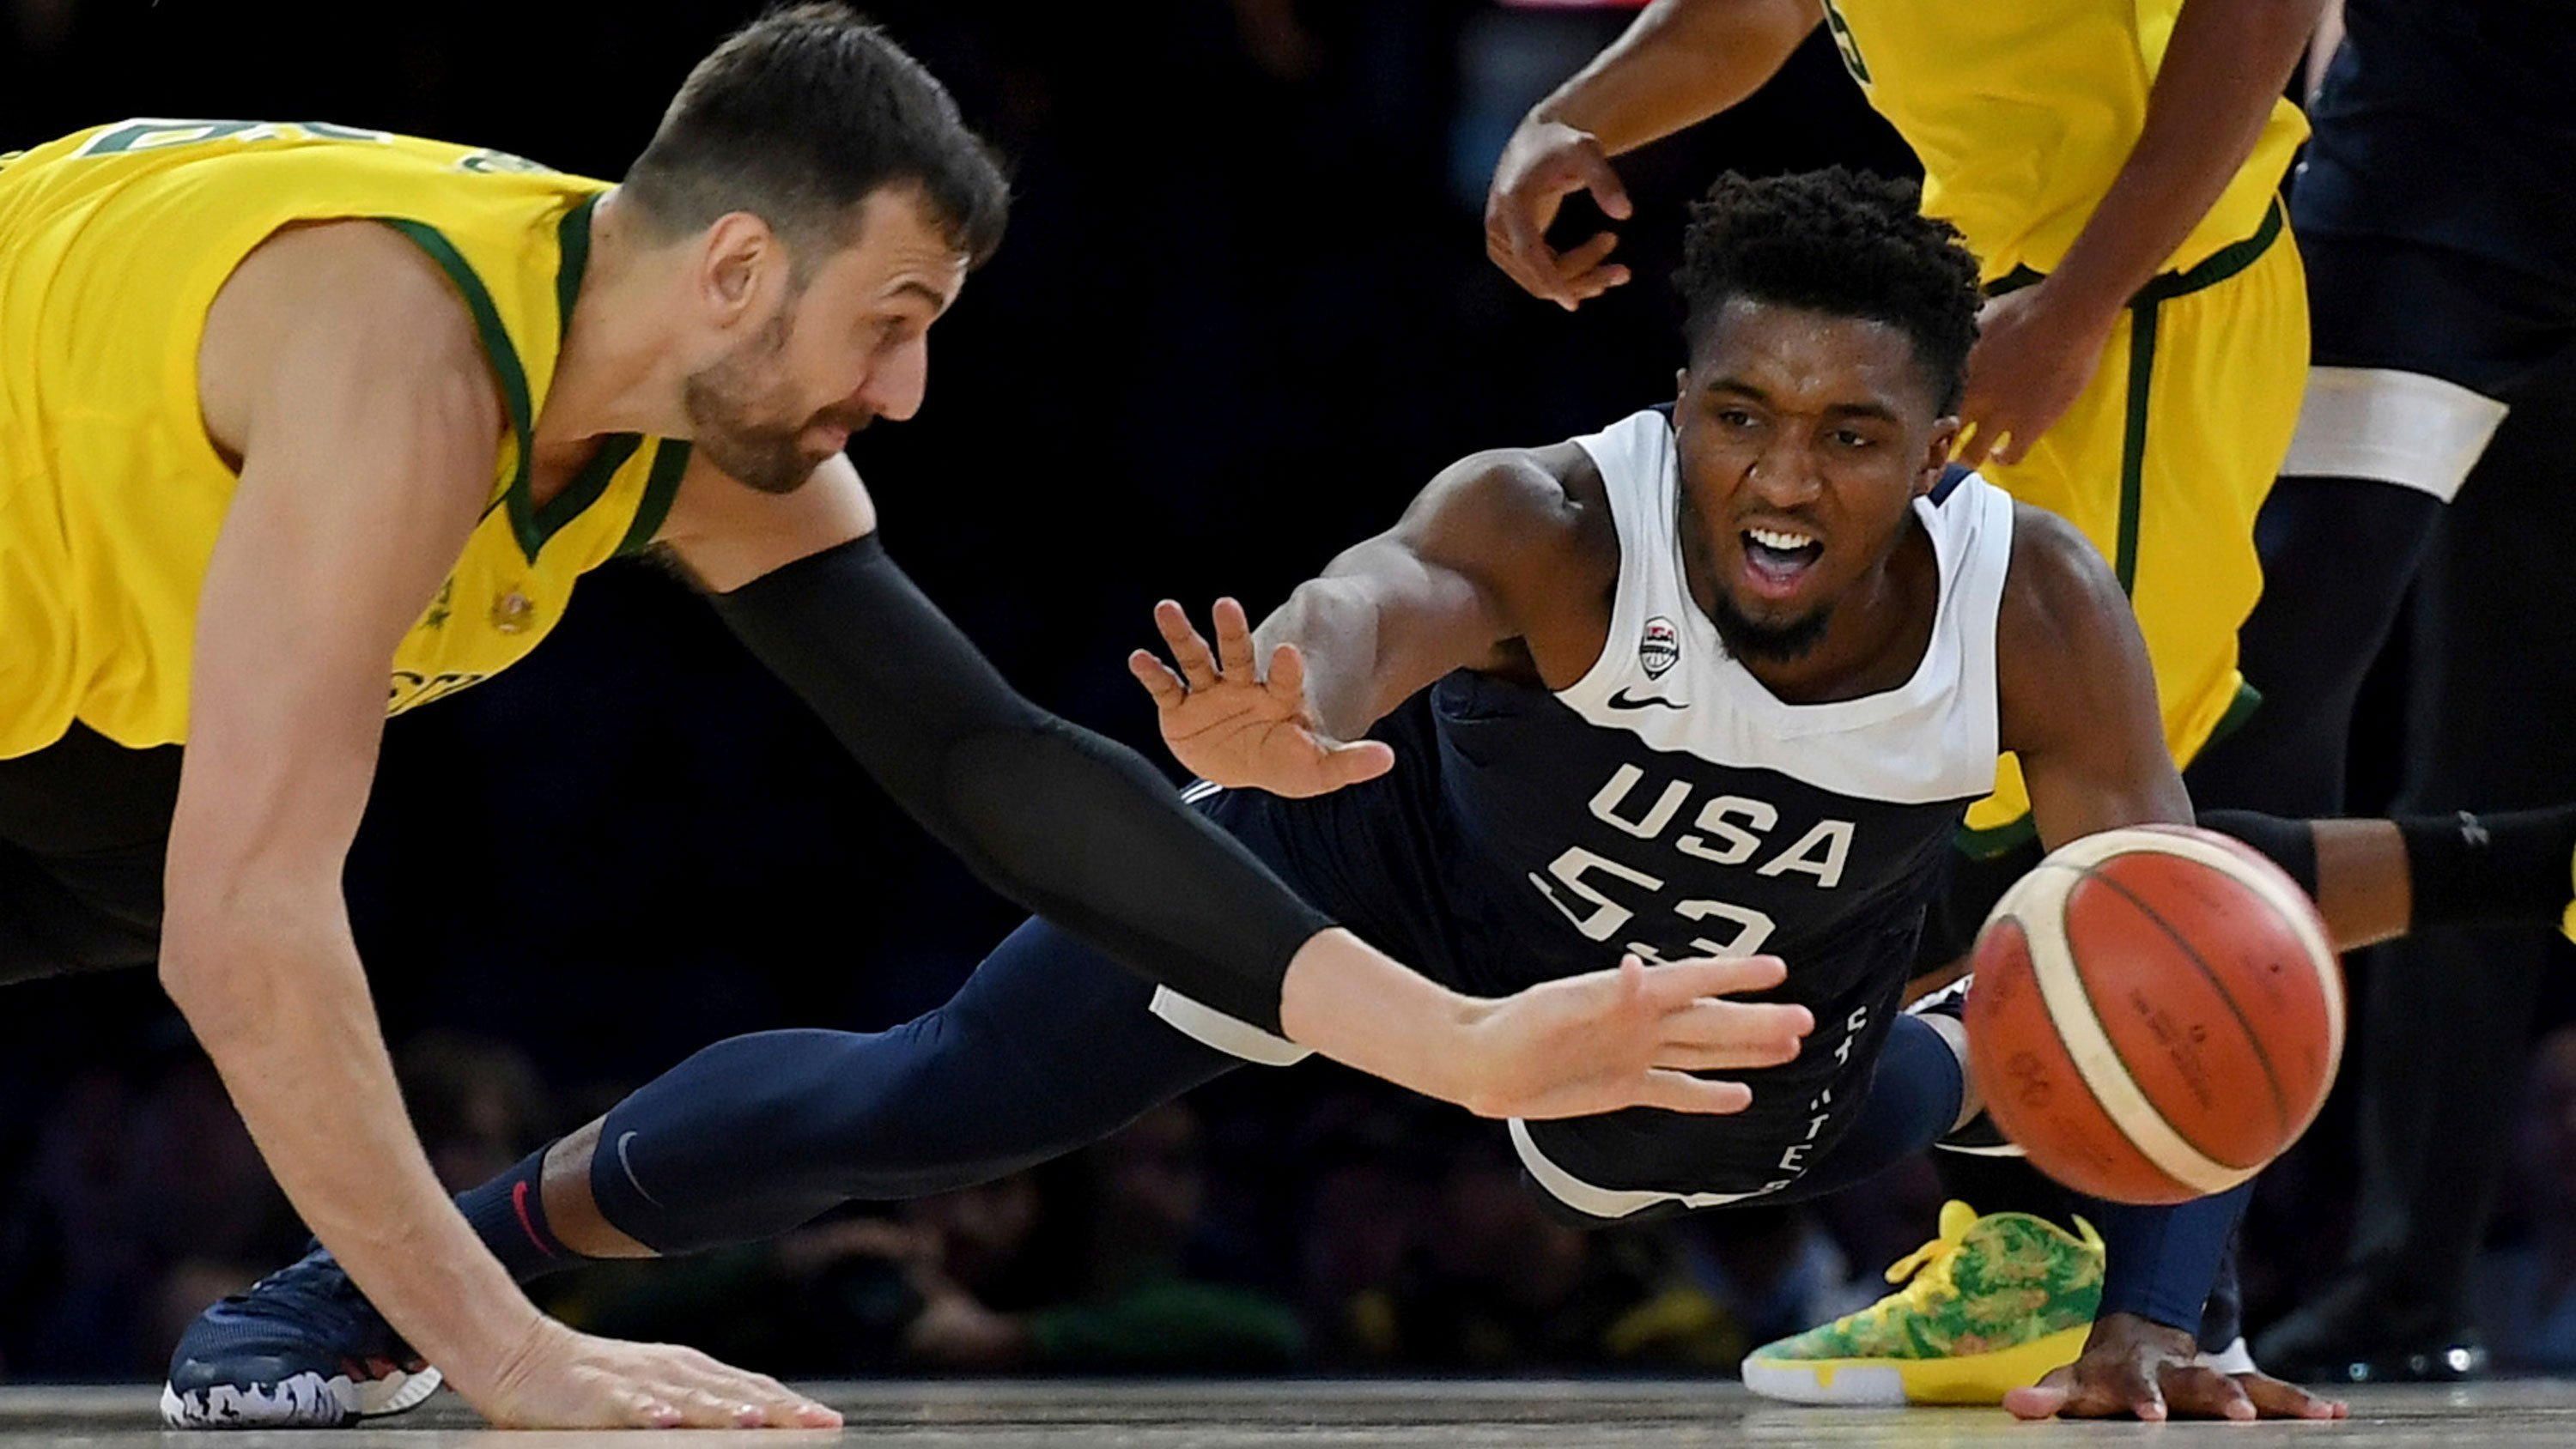 US men's basketball team loses its first game in nearly 13 years to Australia